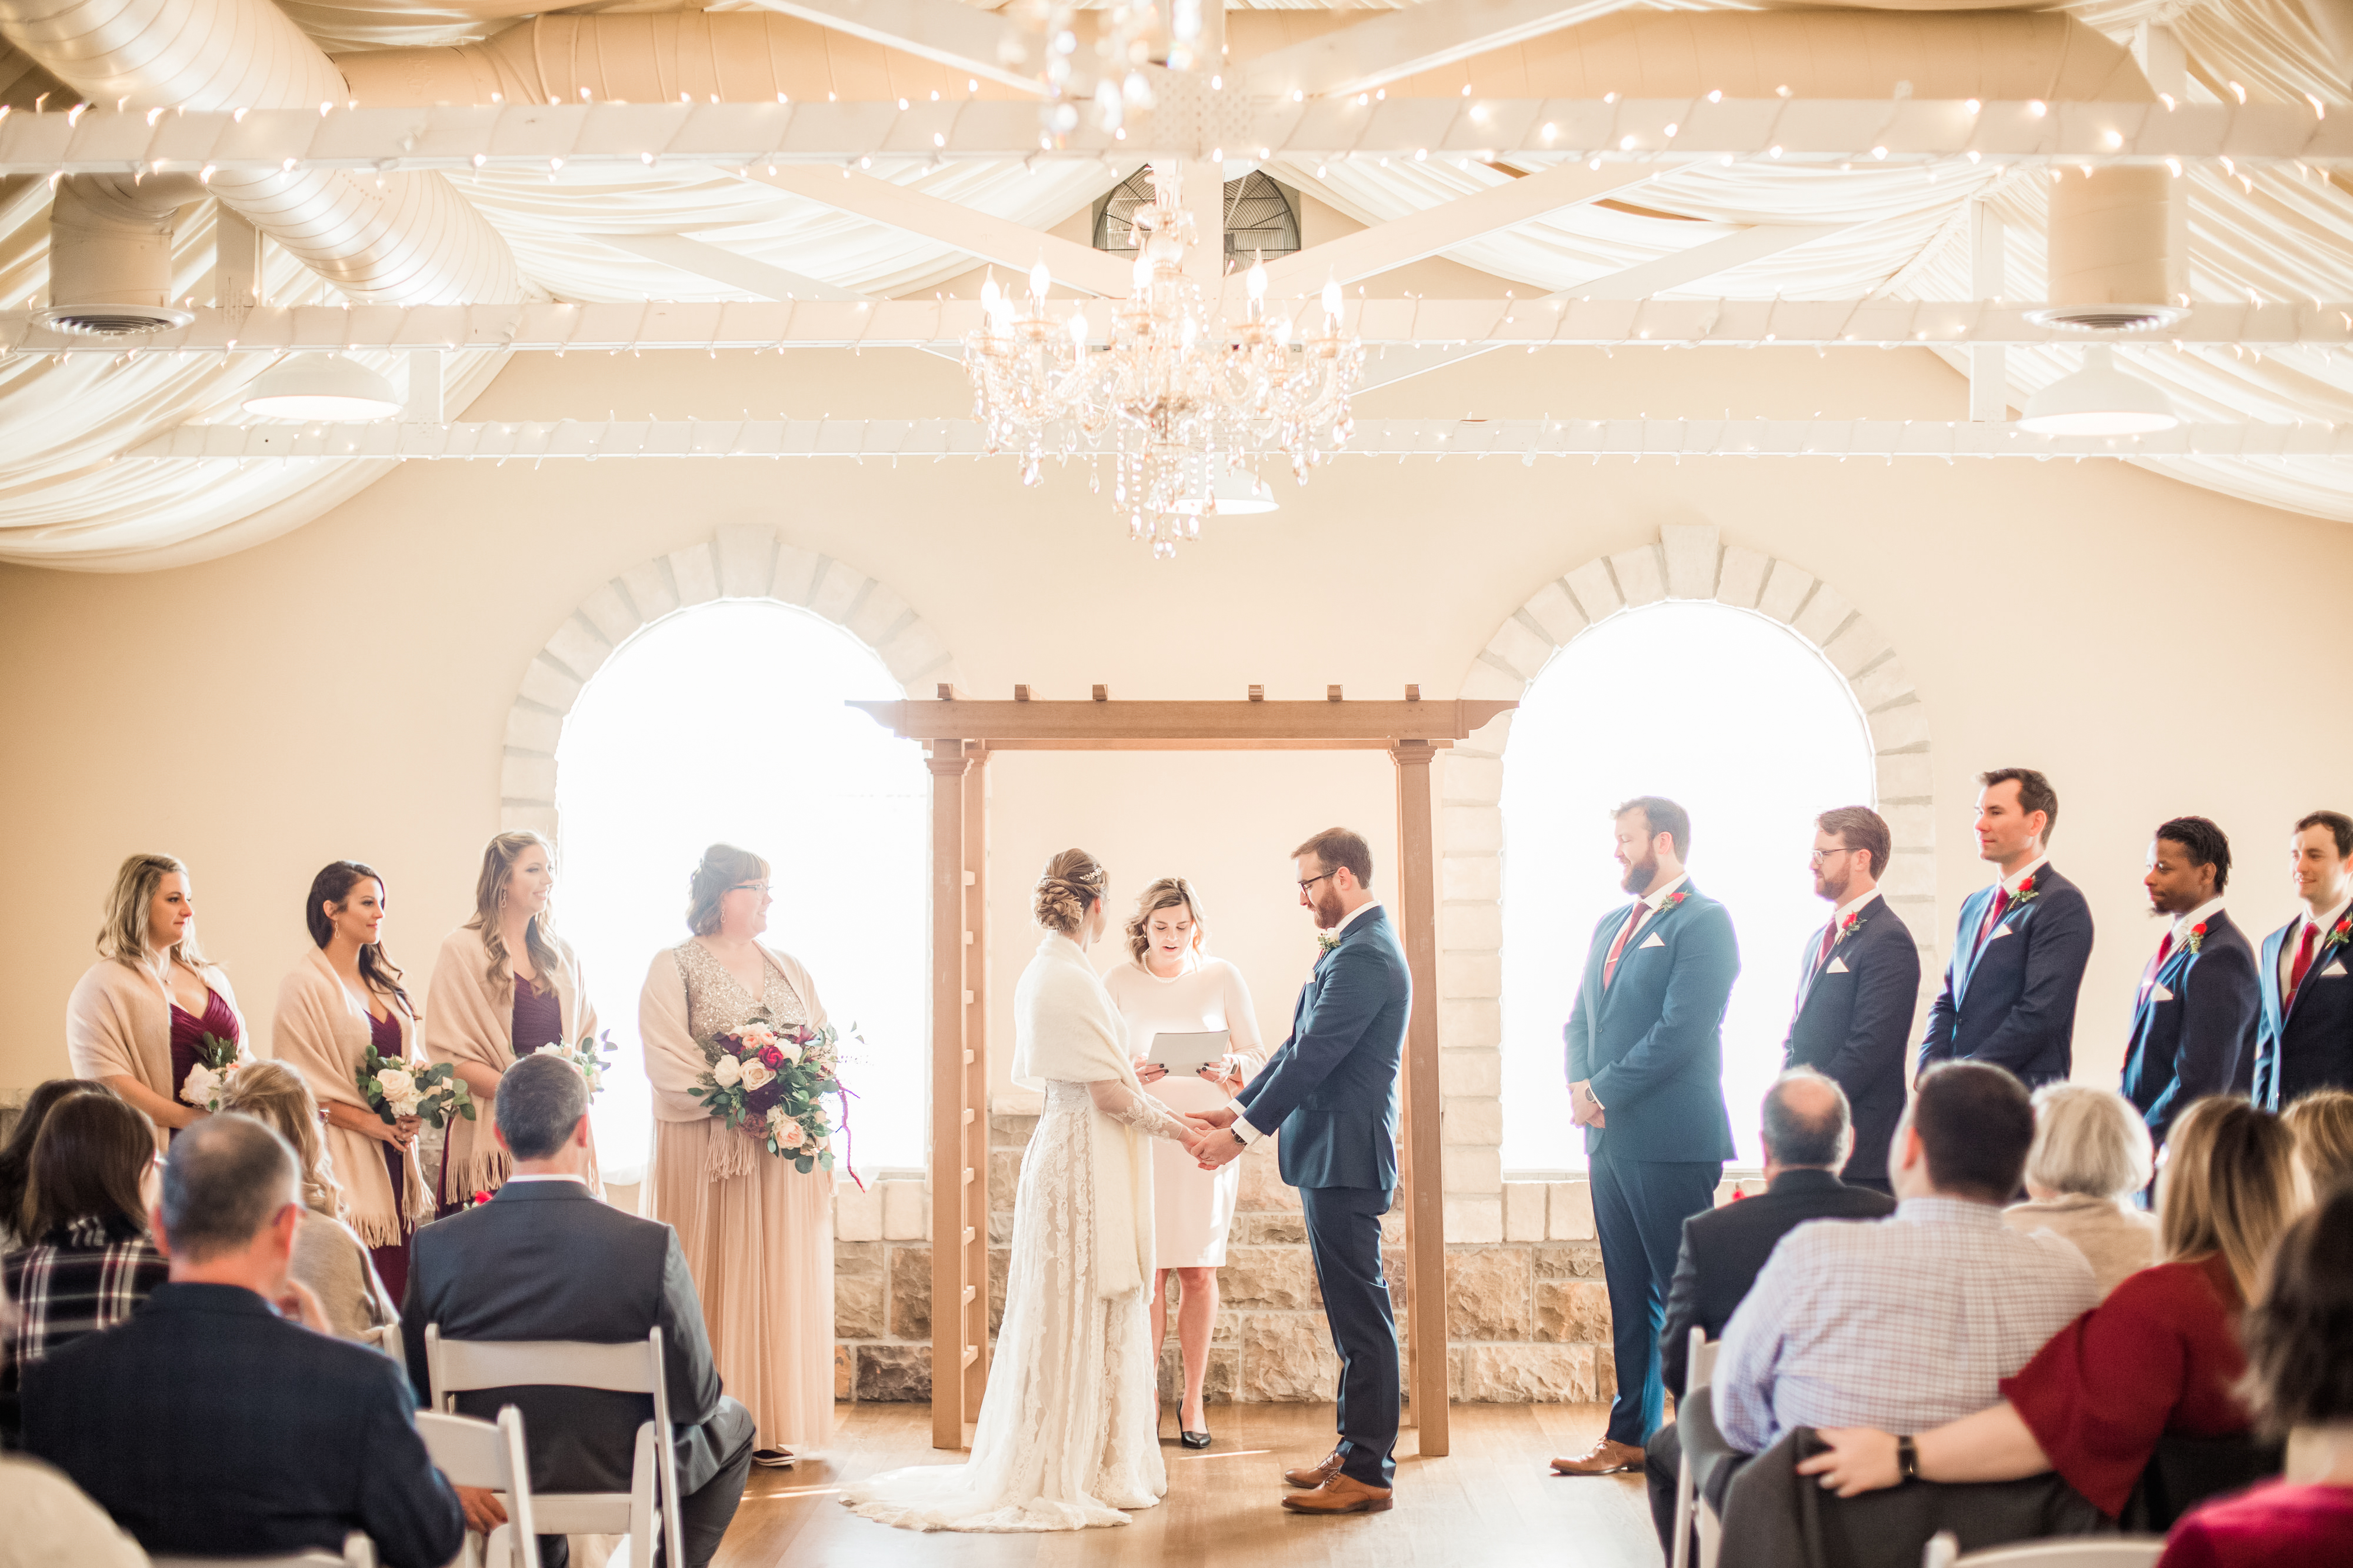 Gorgeous Indoor Ceremony at Tapestry House by Wedgewood Weddings